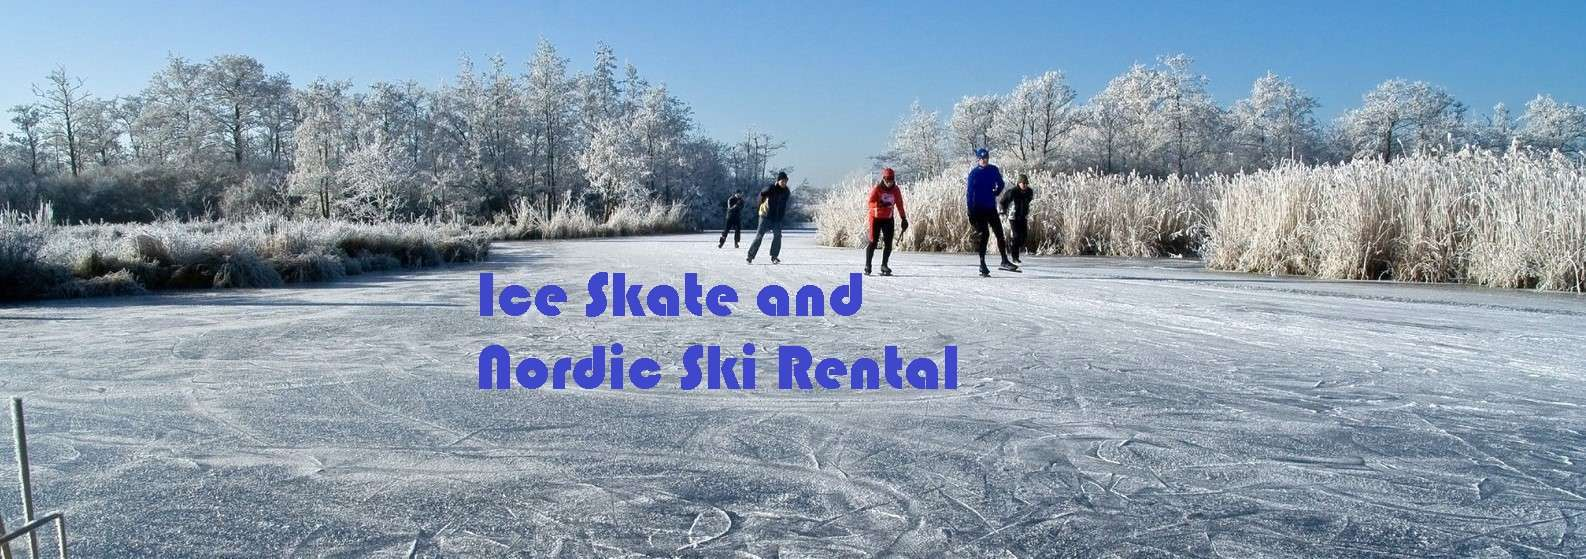 Cross Ski Rental, Nordic Ski, Ice Skate Rental